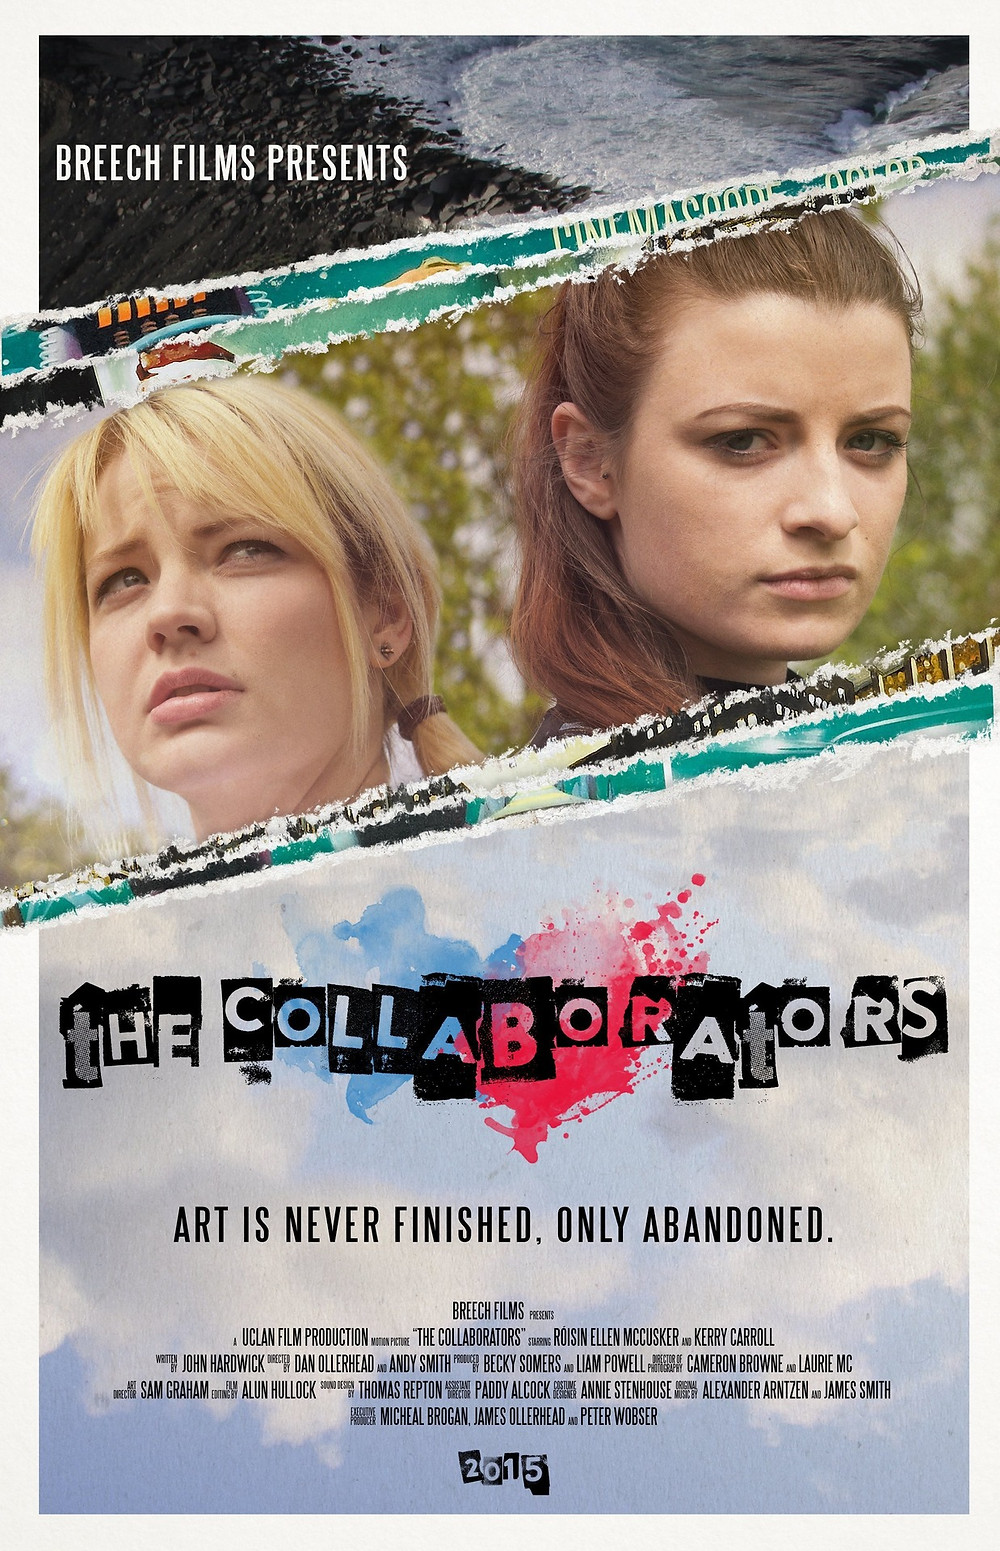 Poster for The Collaborators showing protagonists.